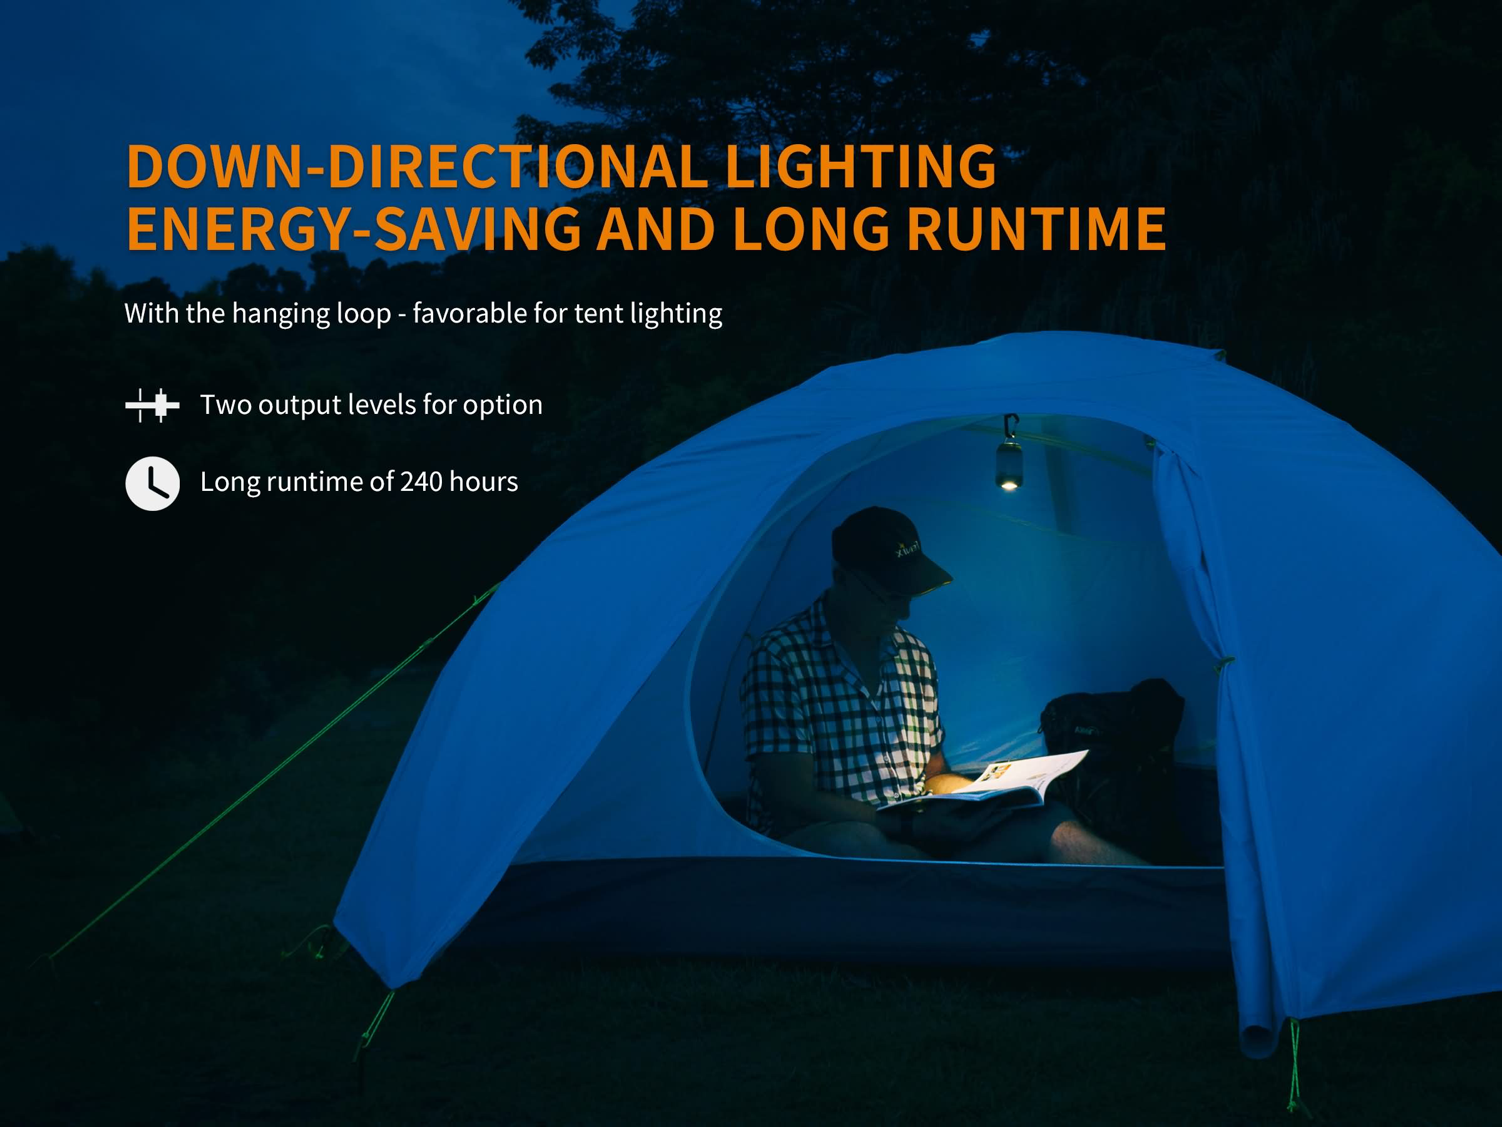 Fenix CL26R LED Camping Lantern, USB Rechargeable Light, Highly Portable and compact light for camping, outdoors, trekking, hiking and emergencies